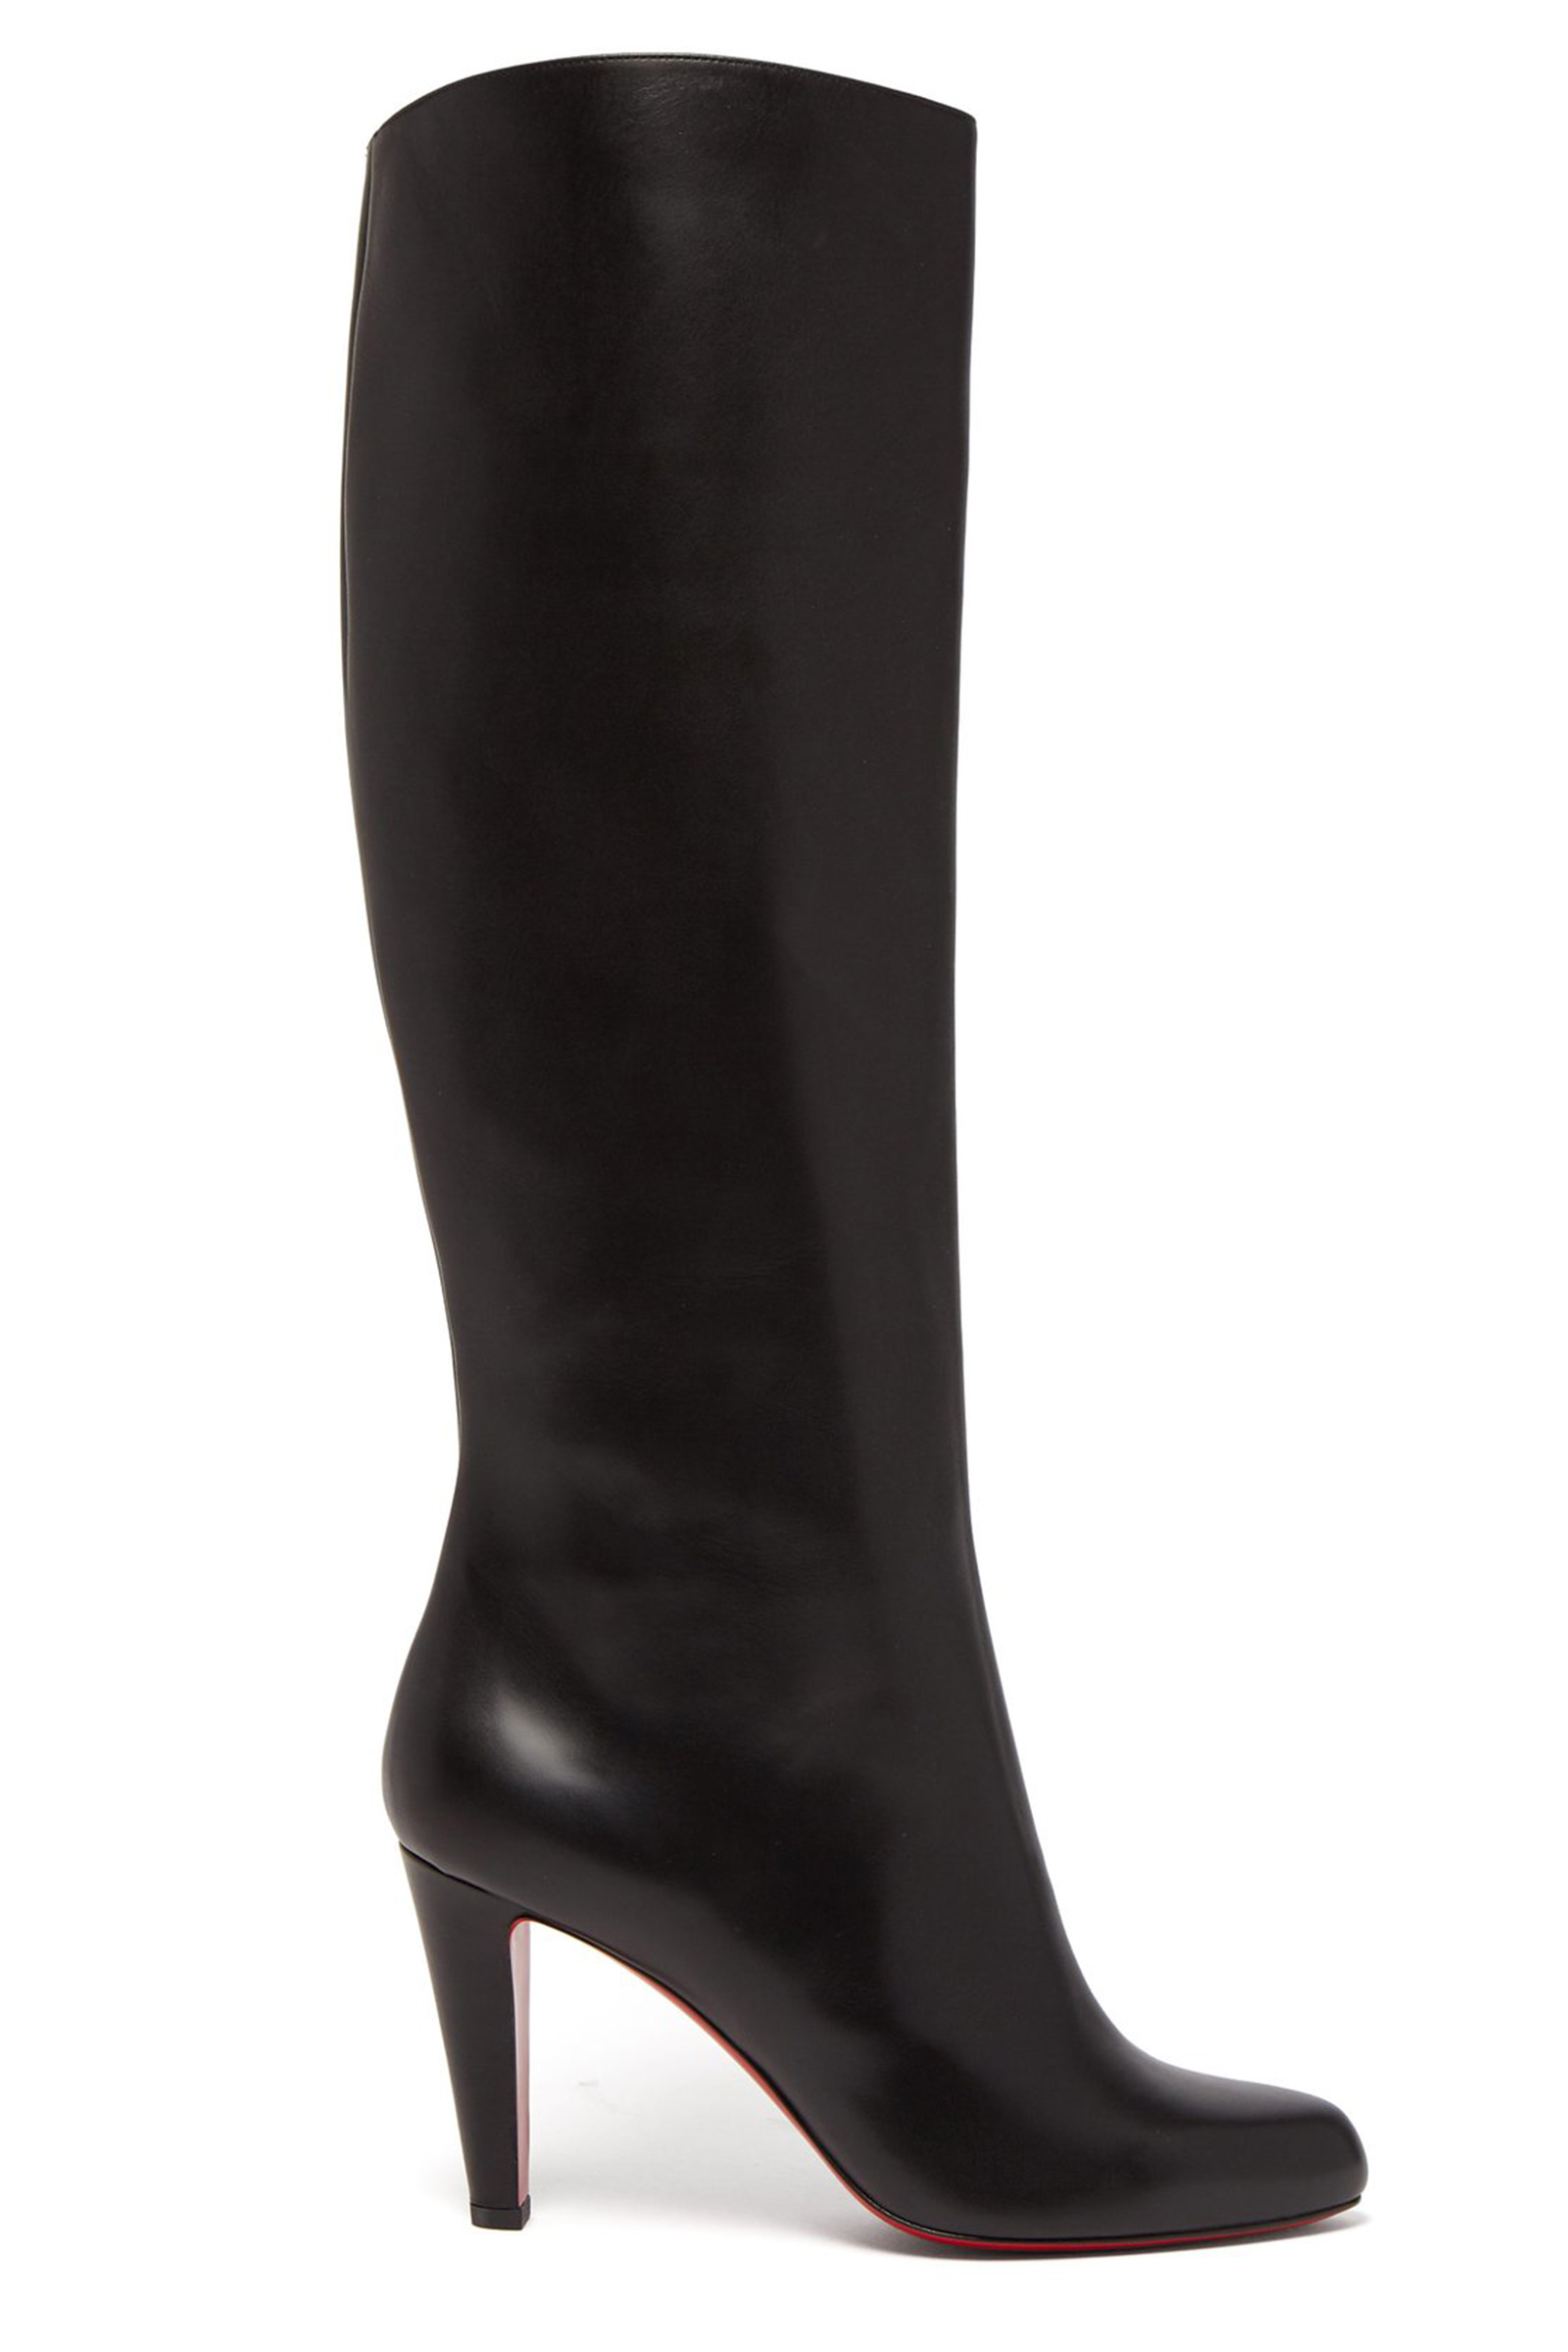 official photos 9f9b4 7a2c5 Marmara 85 Leather Knee-high Boots